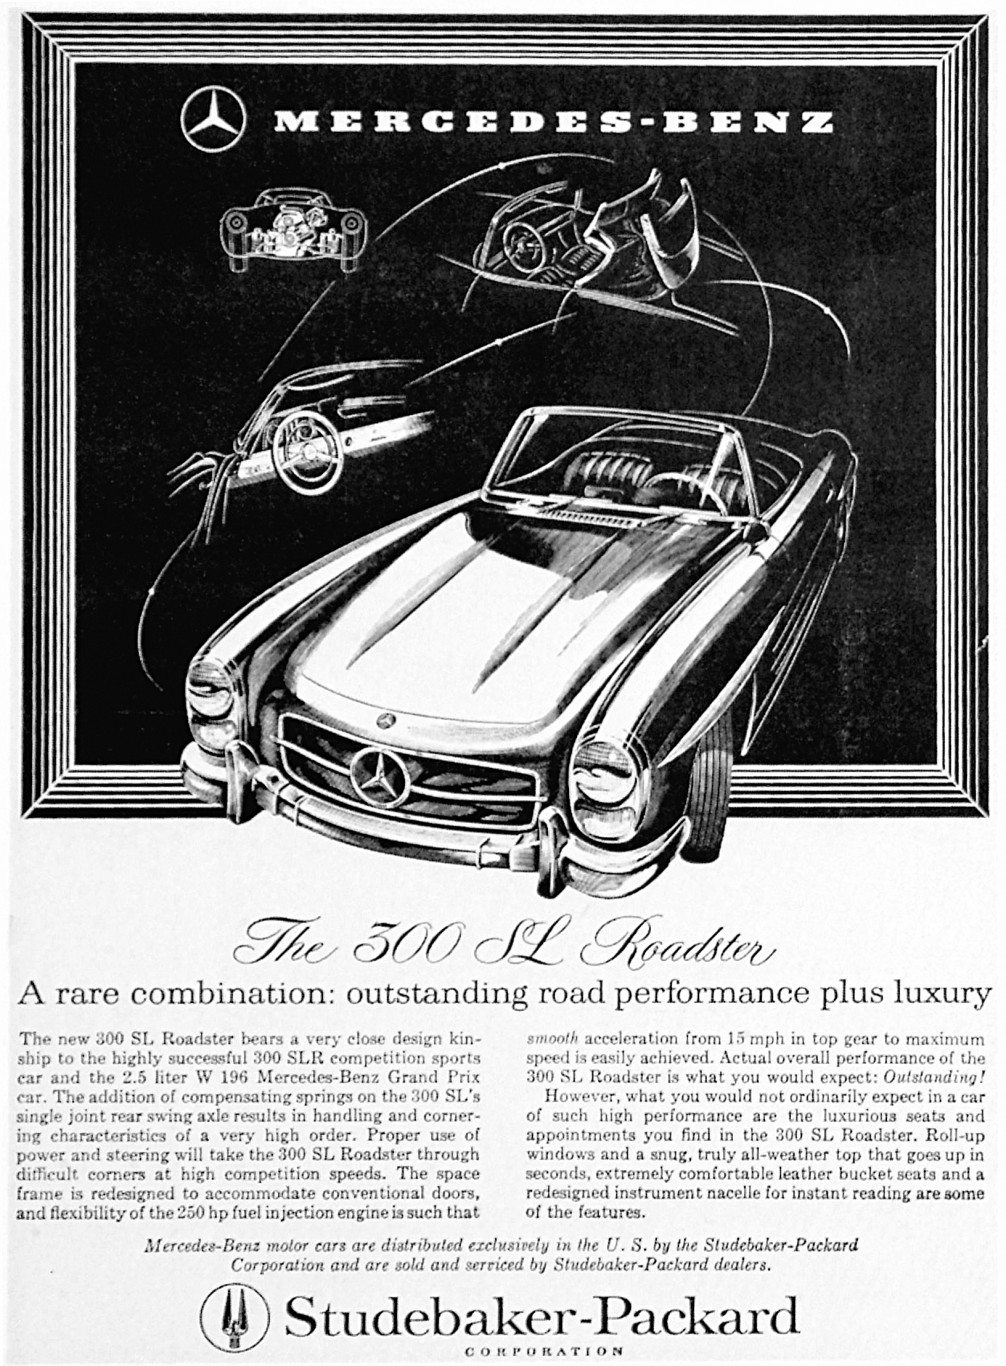 Studebaker-Packard dealership 300sl ad